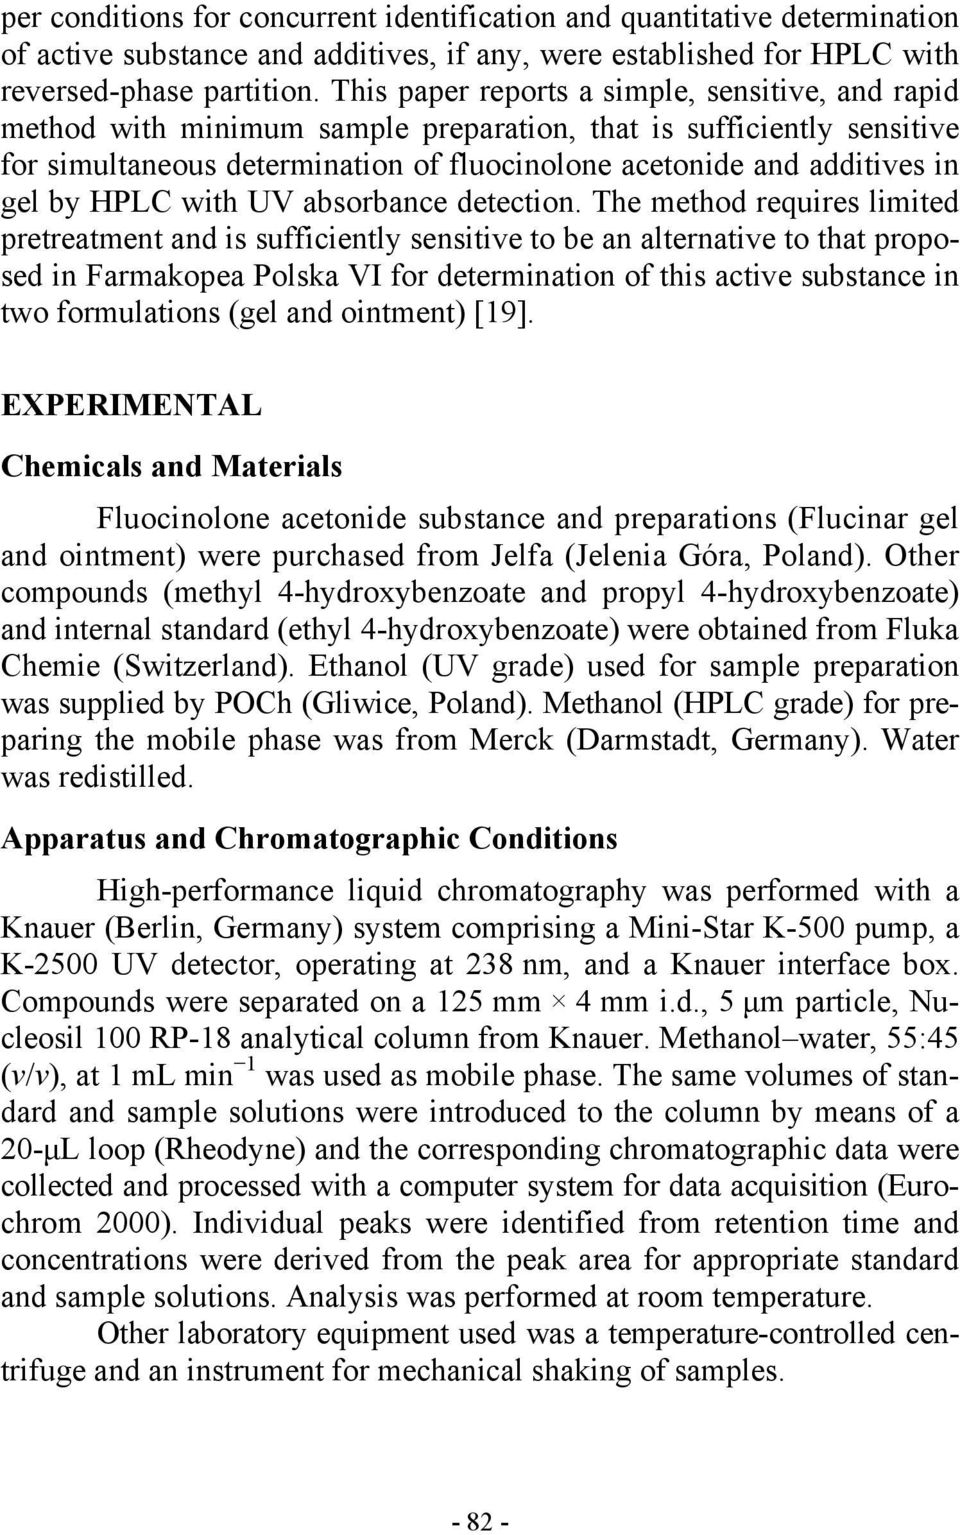 DEVELOPMENT OF A REVERSED-PHASE HPLC METHOD FOR ANALYSIS OF